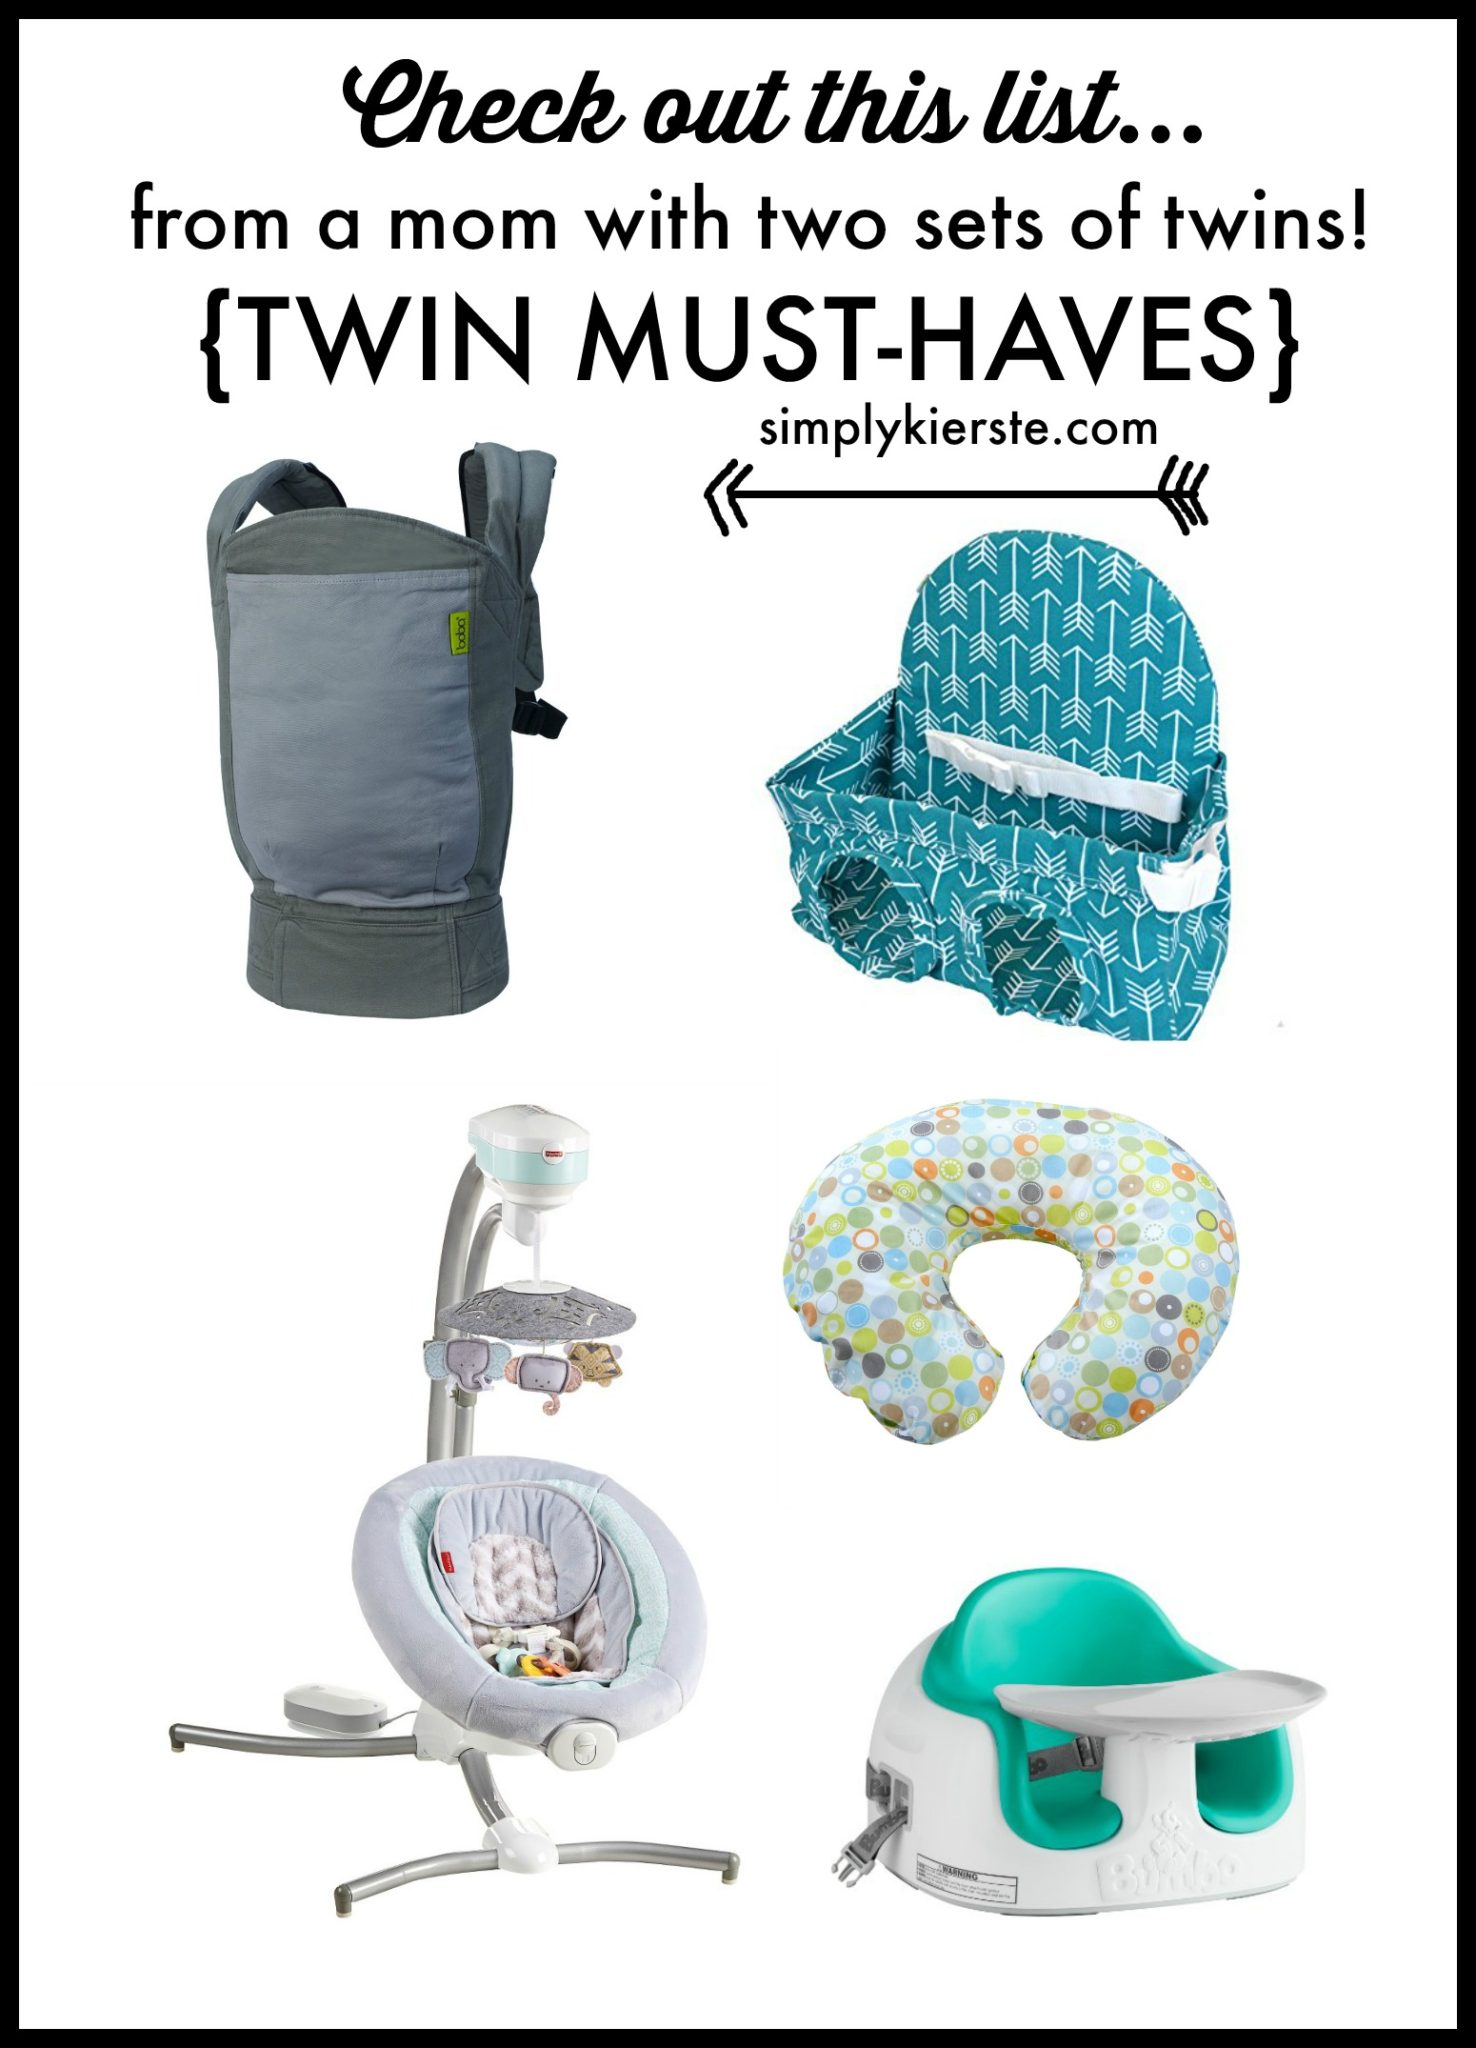 Expecting twins? Check out this list of twin must-haves!